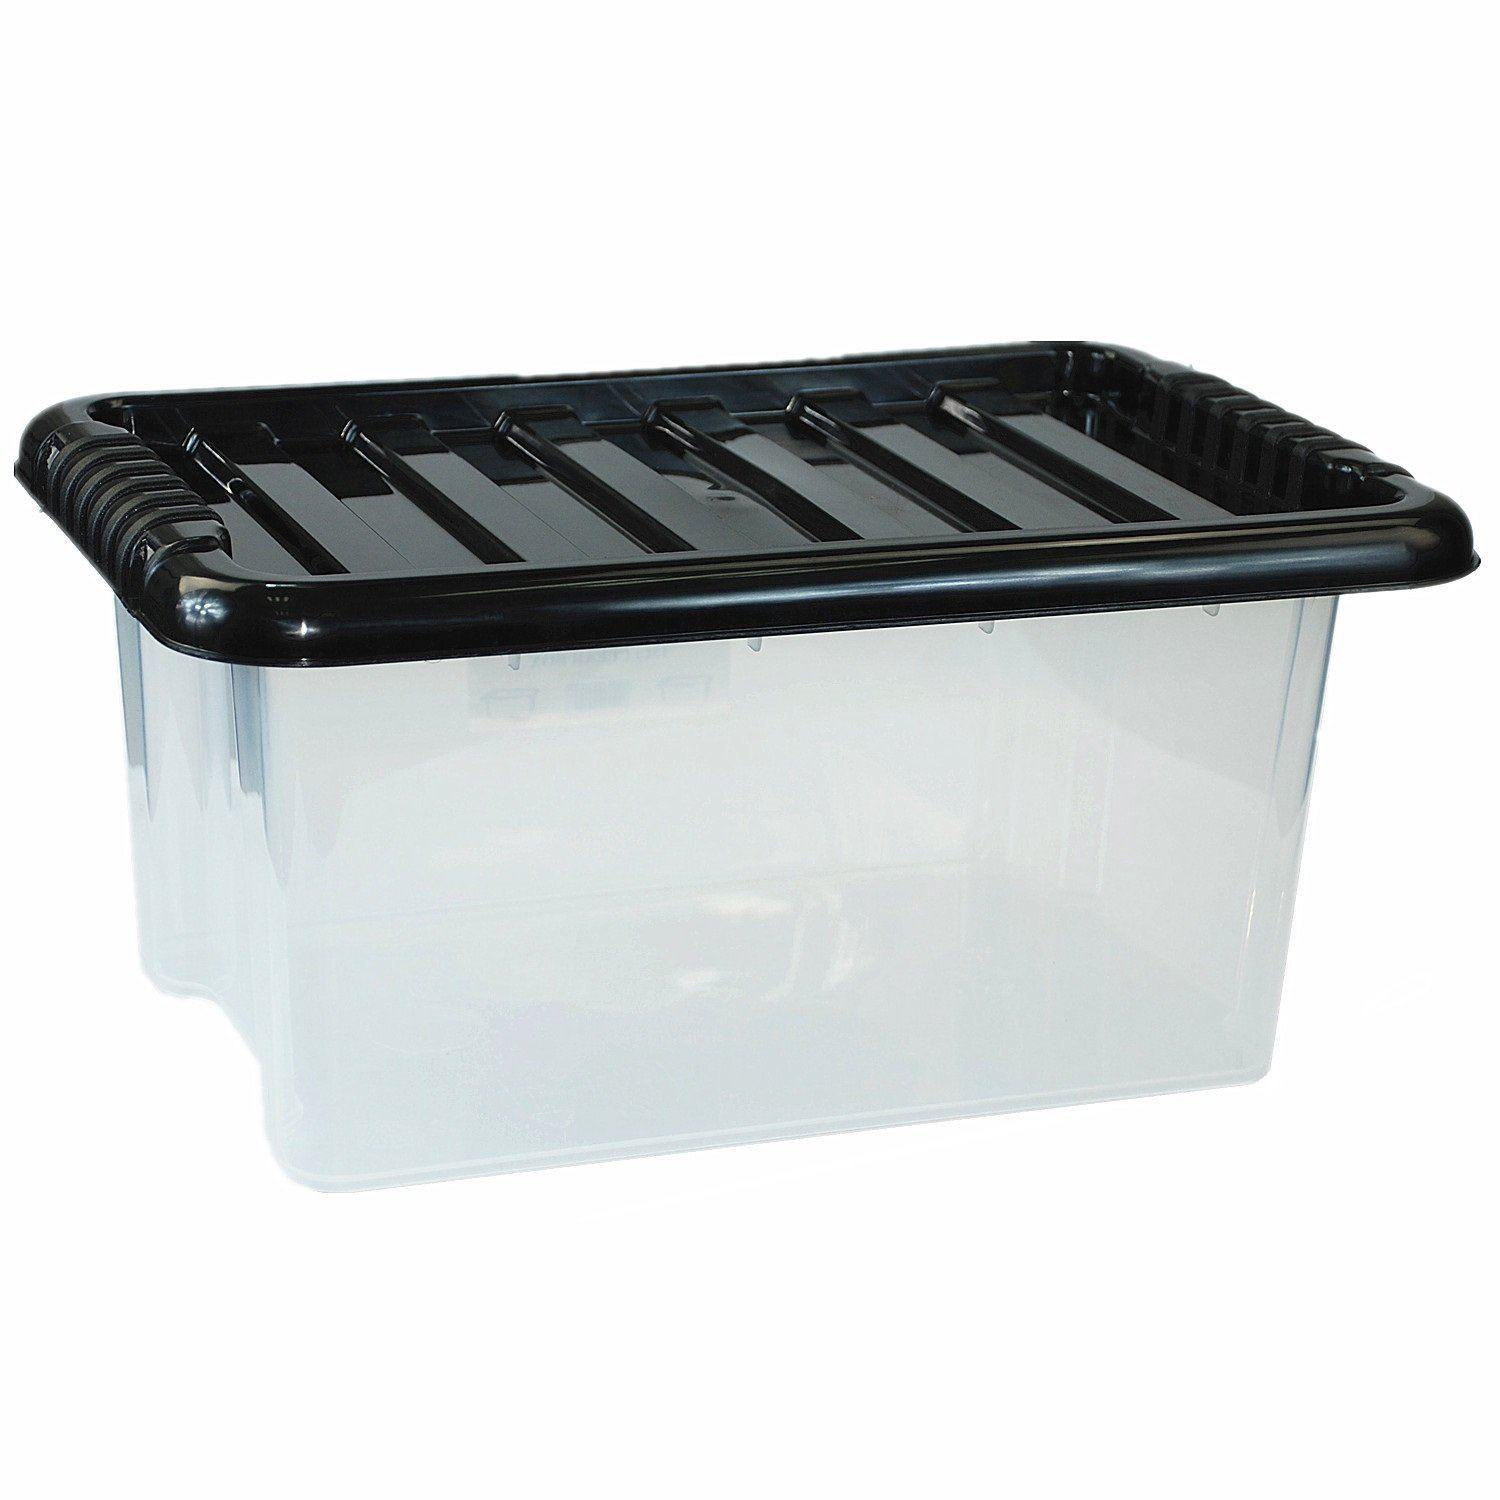 Large Plastic Storage Boxes Large Plastic Storage Clear Box With Lid Strong Container